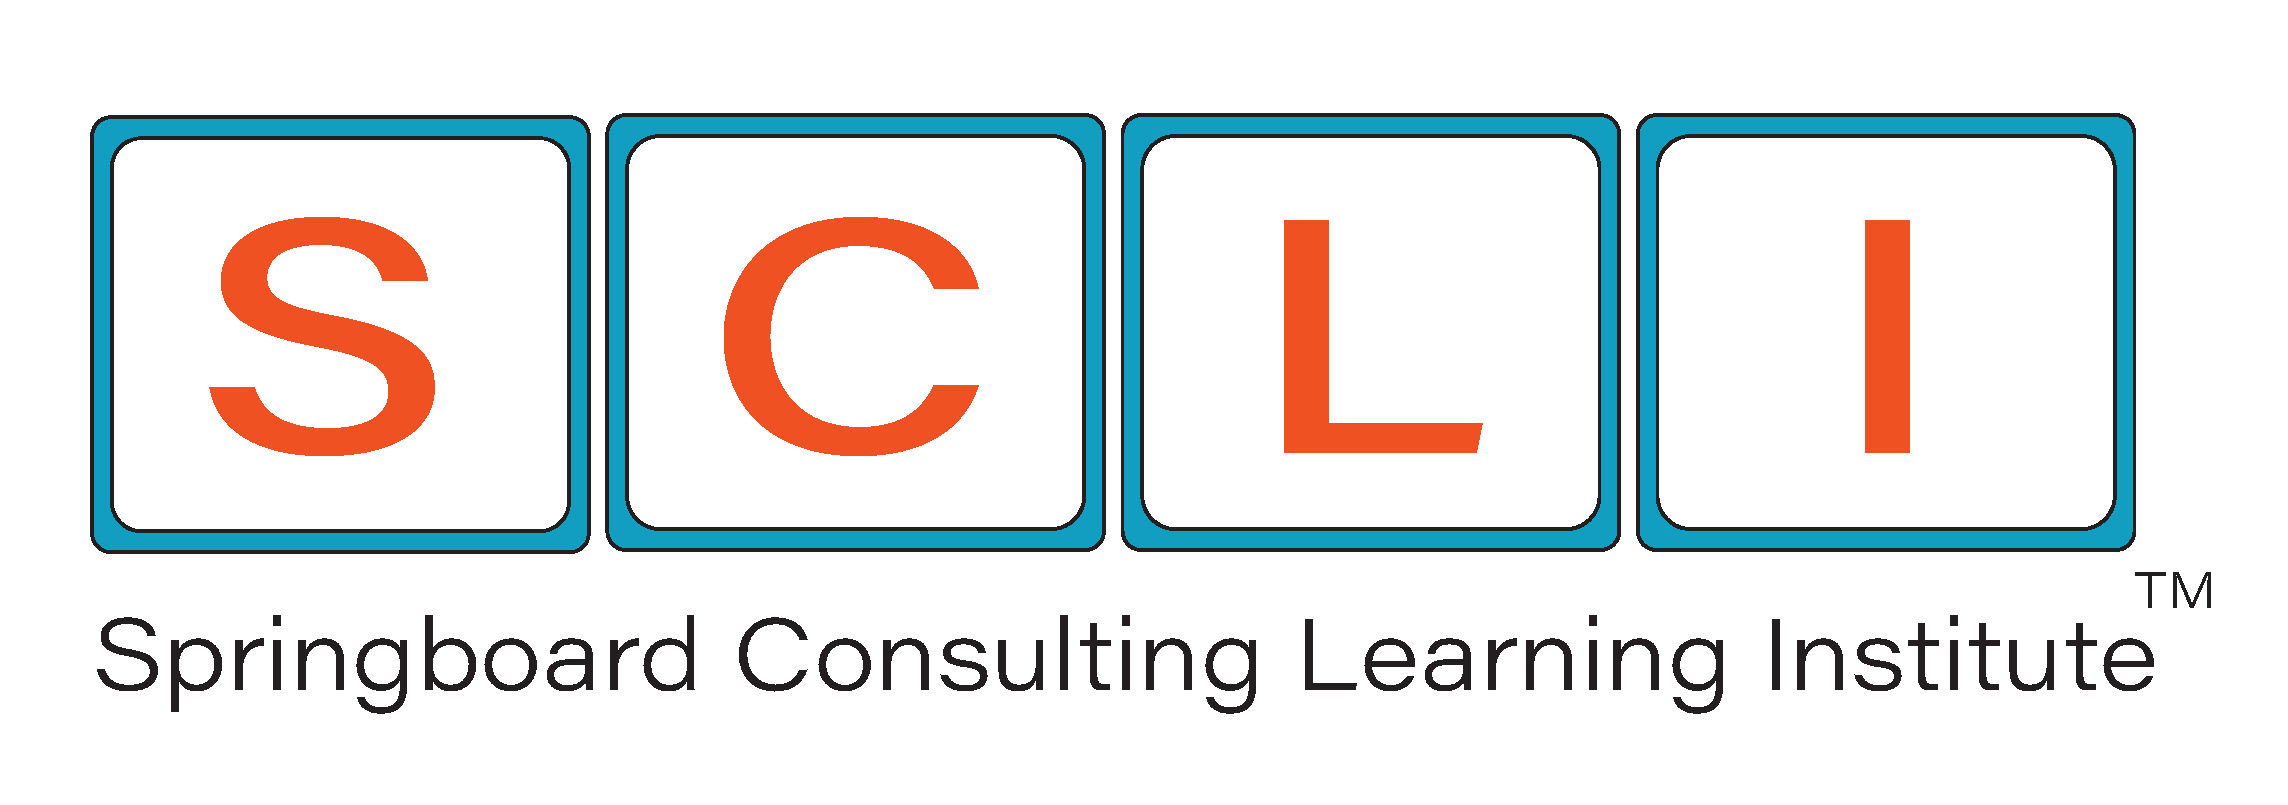 Springboard Consulting Learning Institute Logo